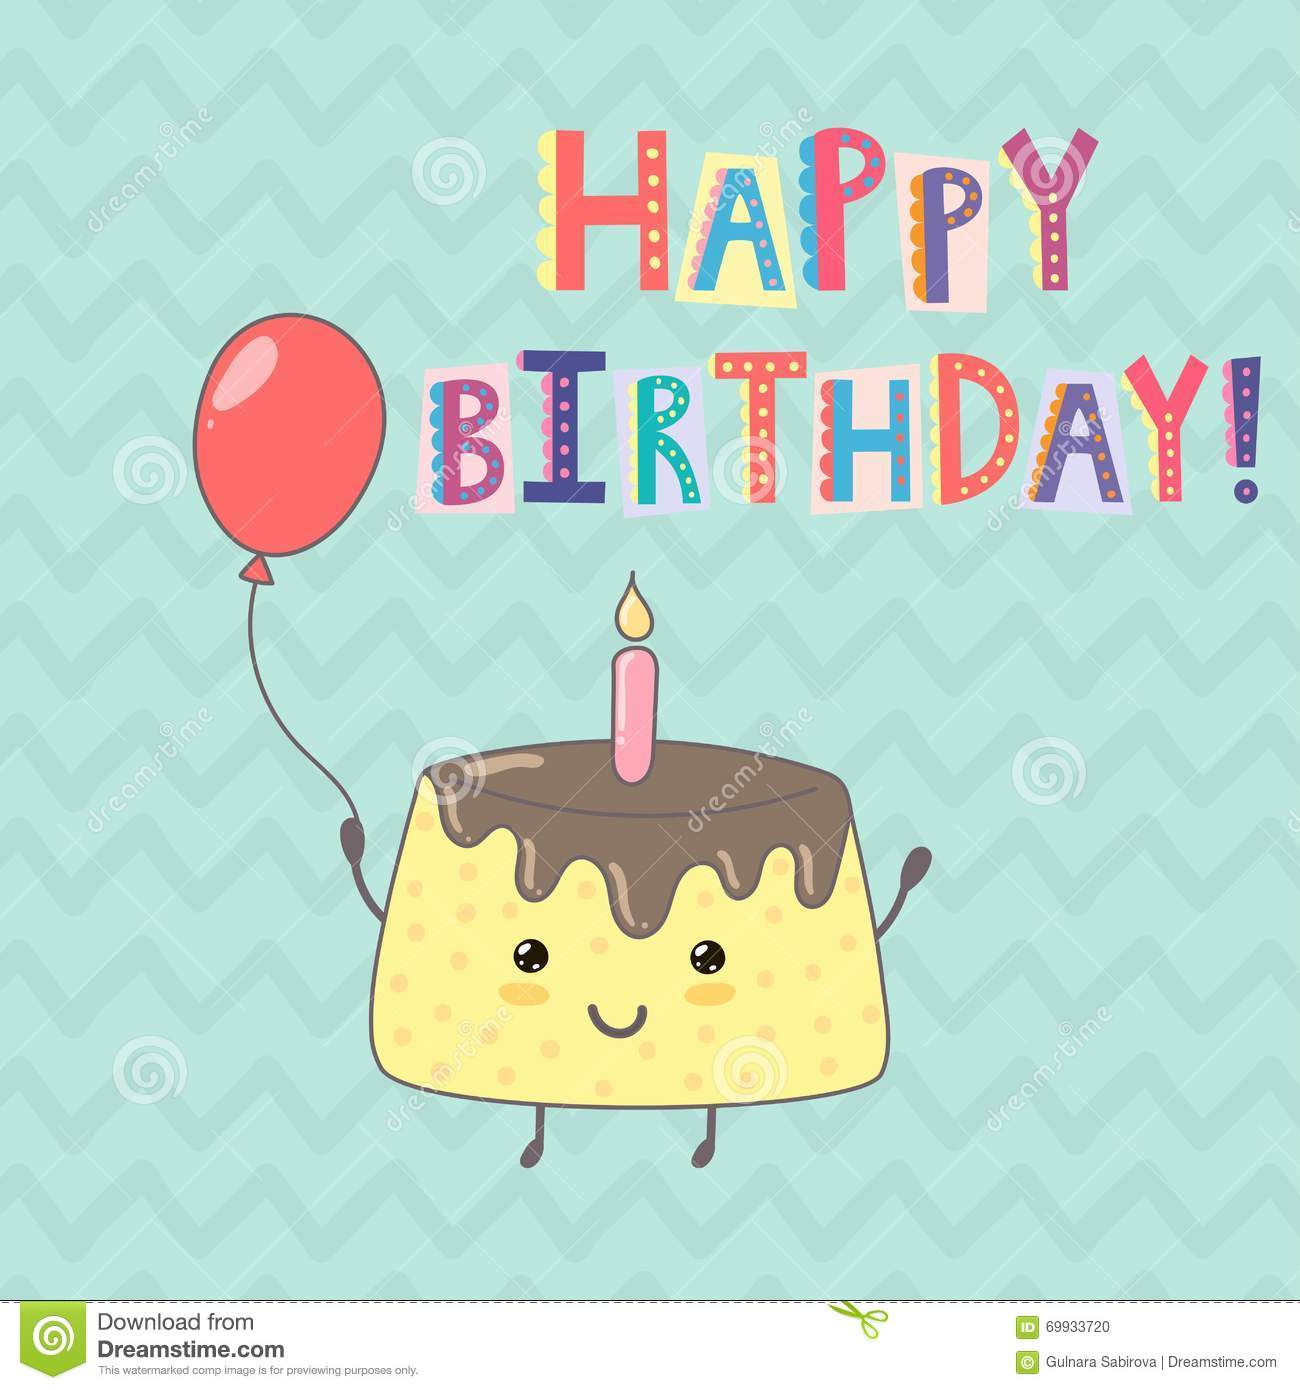 Cute Cake Images For Birthday : Happy Birthday Greeting Card With A Cute Cake Stock Vector ...